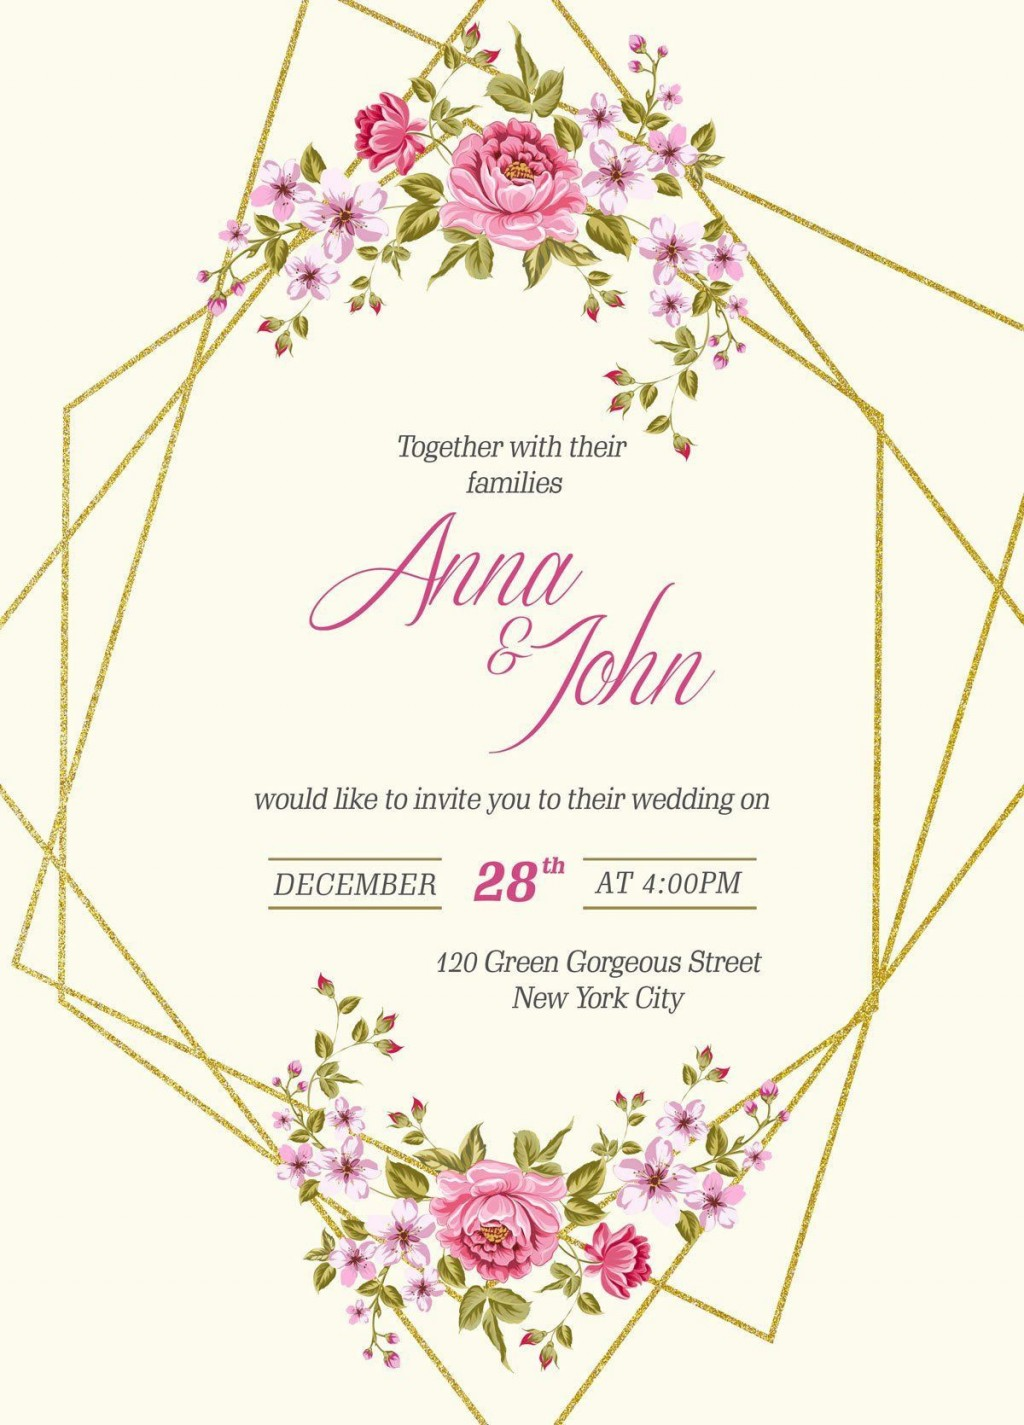 005 Wondrou Download Free Wedding Invitation Card Template Concept  Marriage Format PsdLarge